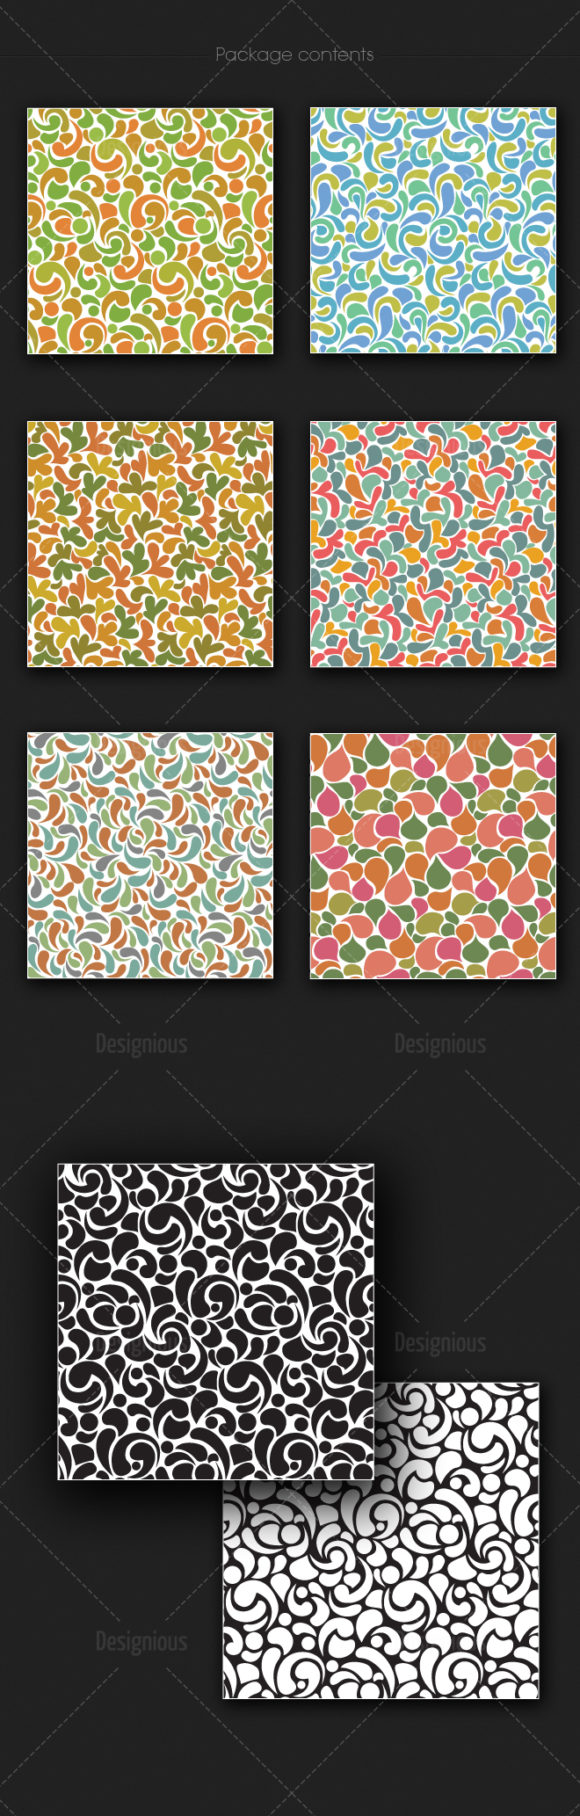 Seamless Patterns Vector Pack 152 products designious vector seamless 152 large